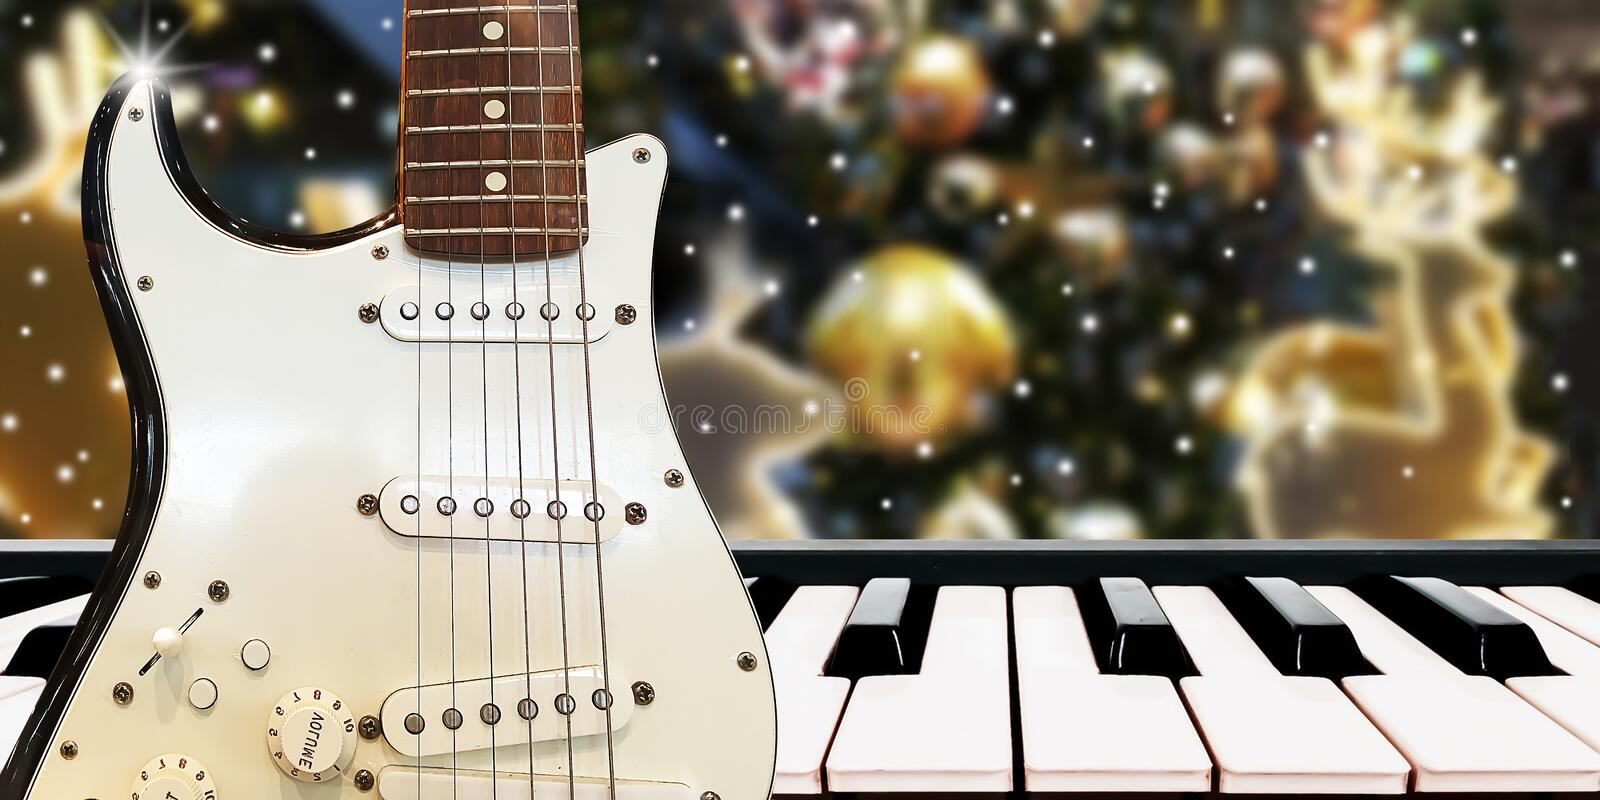 Fantasy Music Keyboard Stock Images - Download 32 Royalty